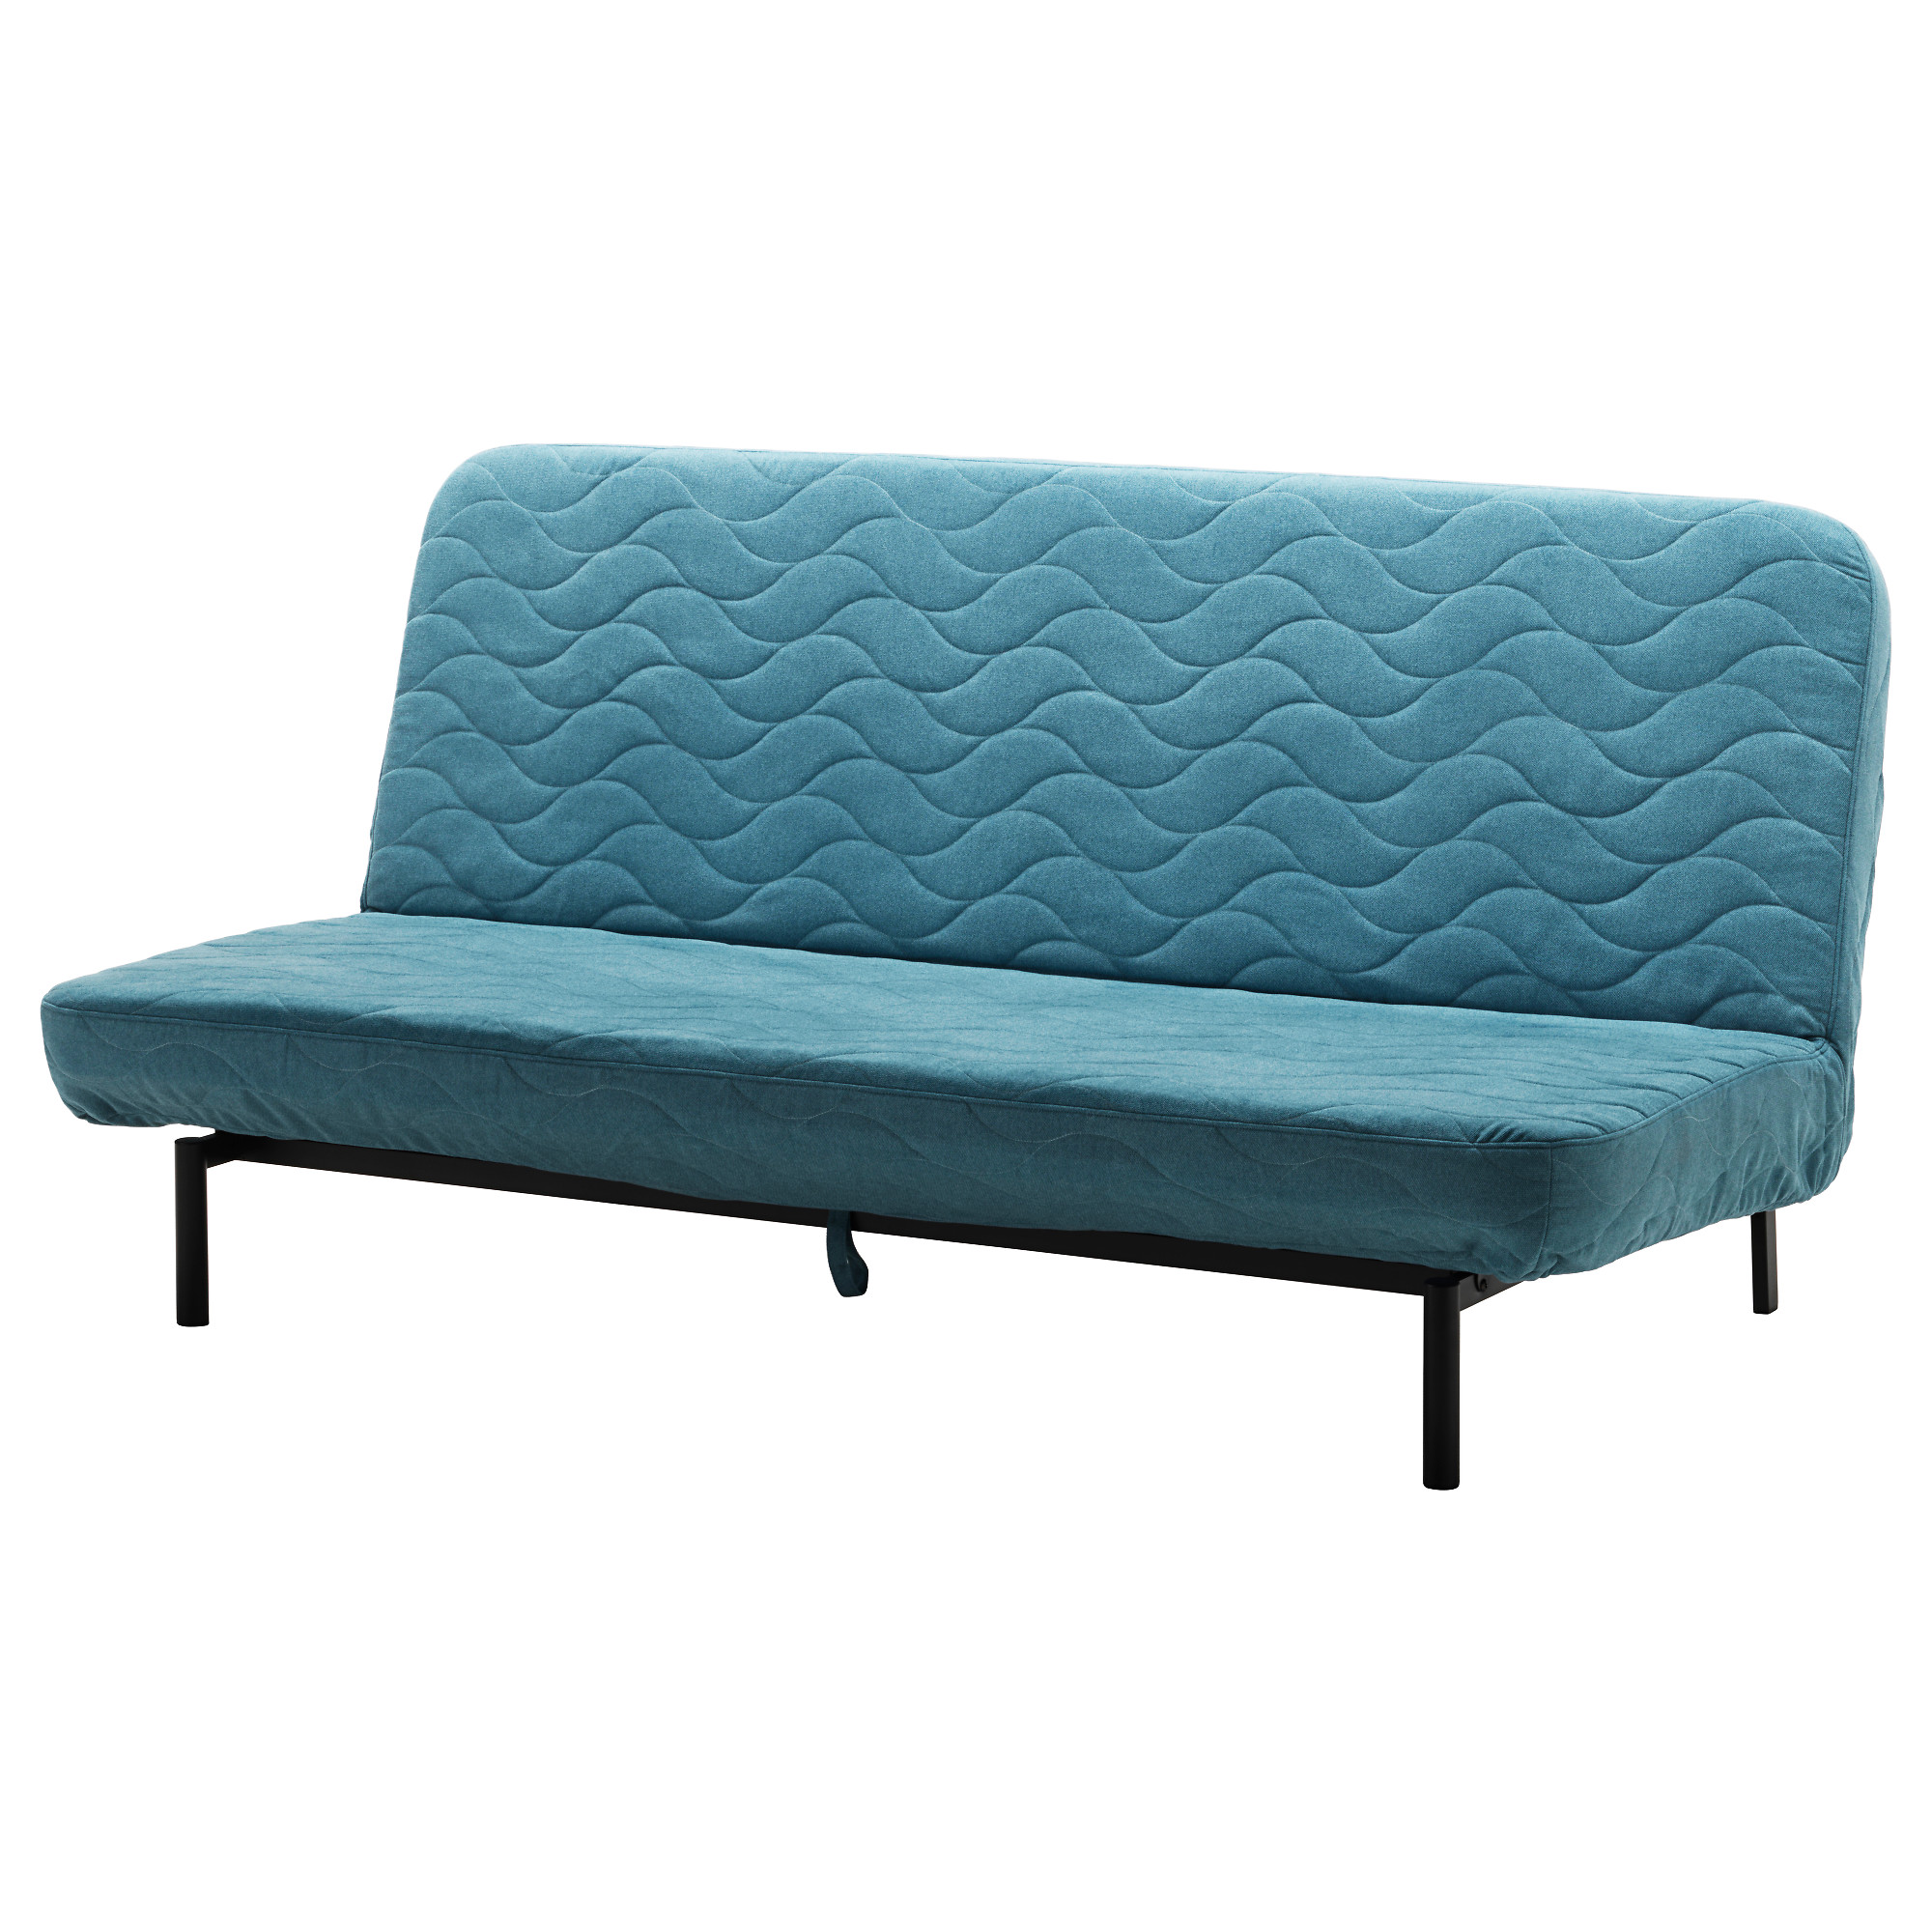 Nyhamn Sleeper Sofa With Pocket Spring Mattress Borred Green Blue